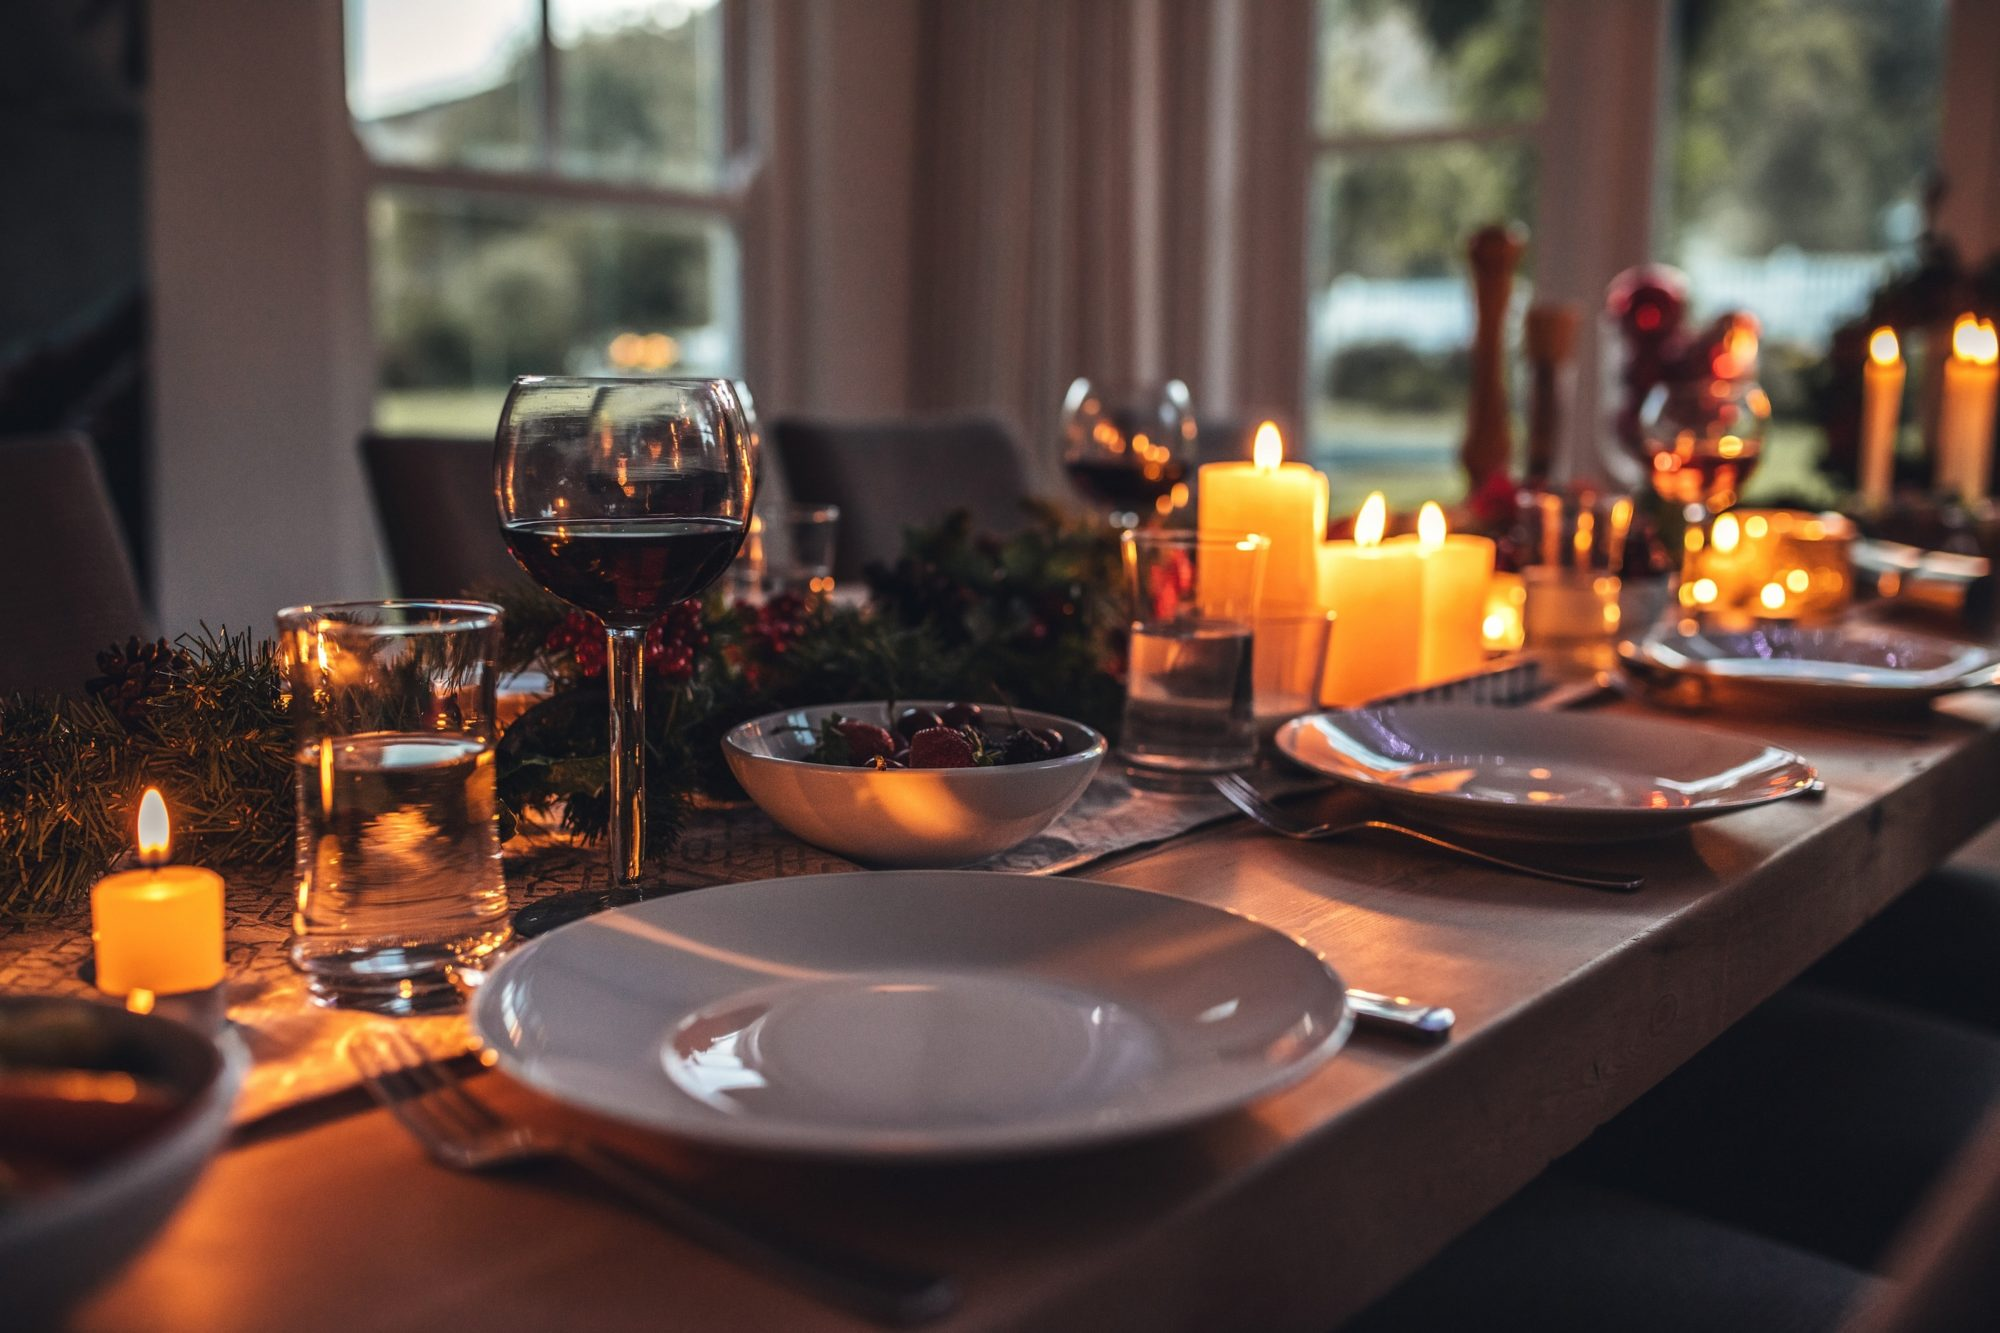 Sierra Remodeling and Home Builders, Inc wishes you a very Happy Thanksgiving